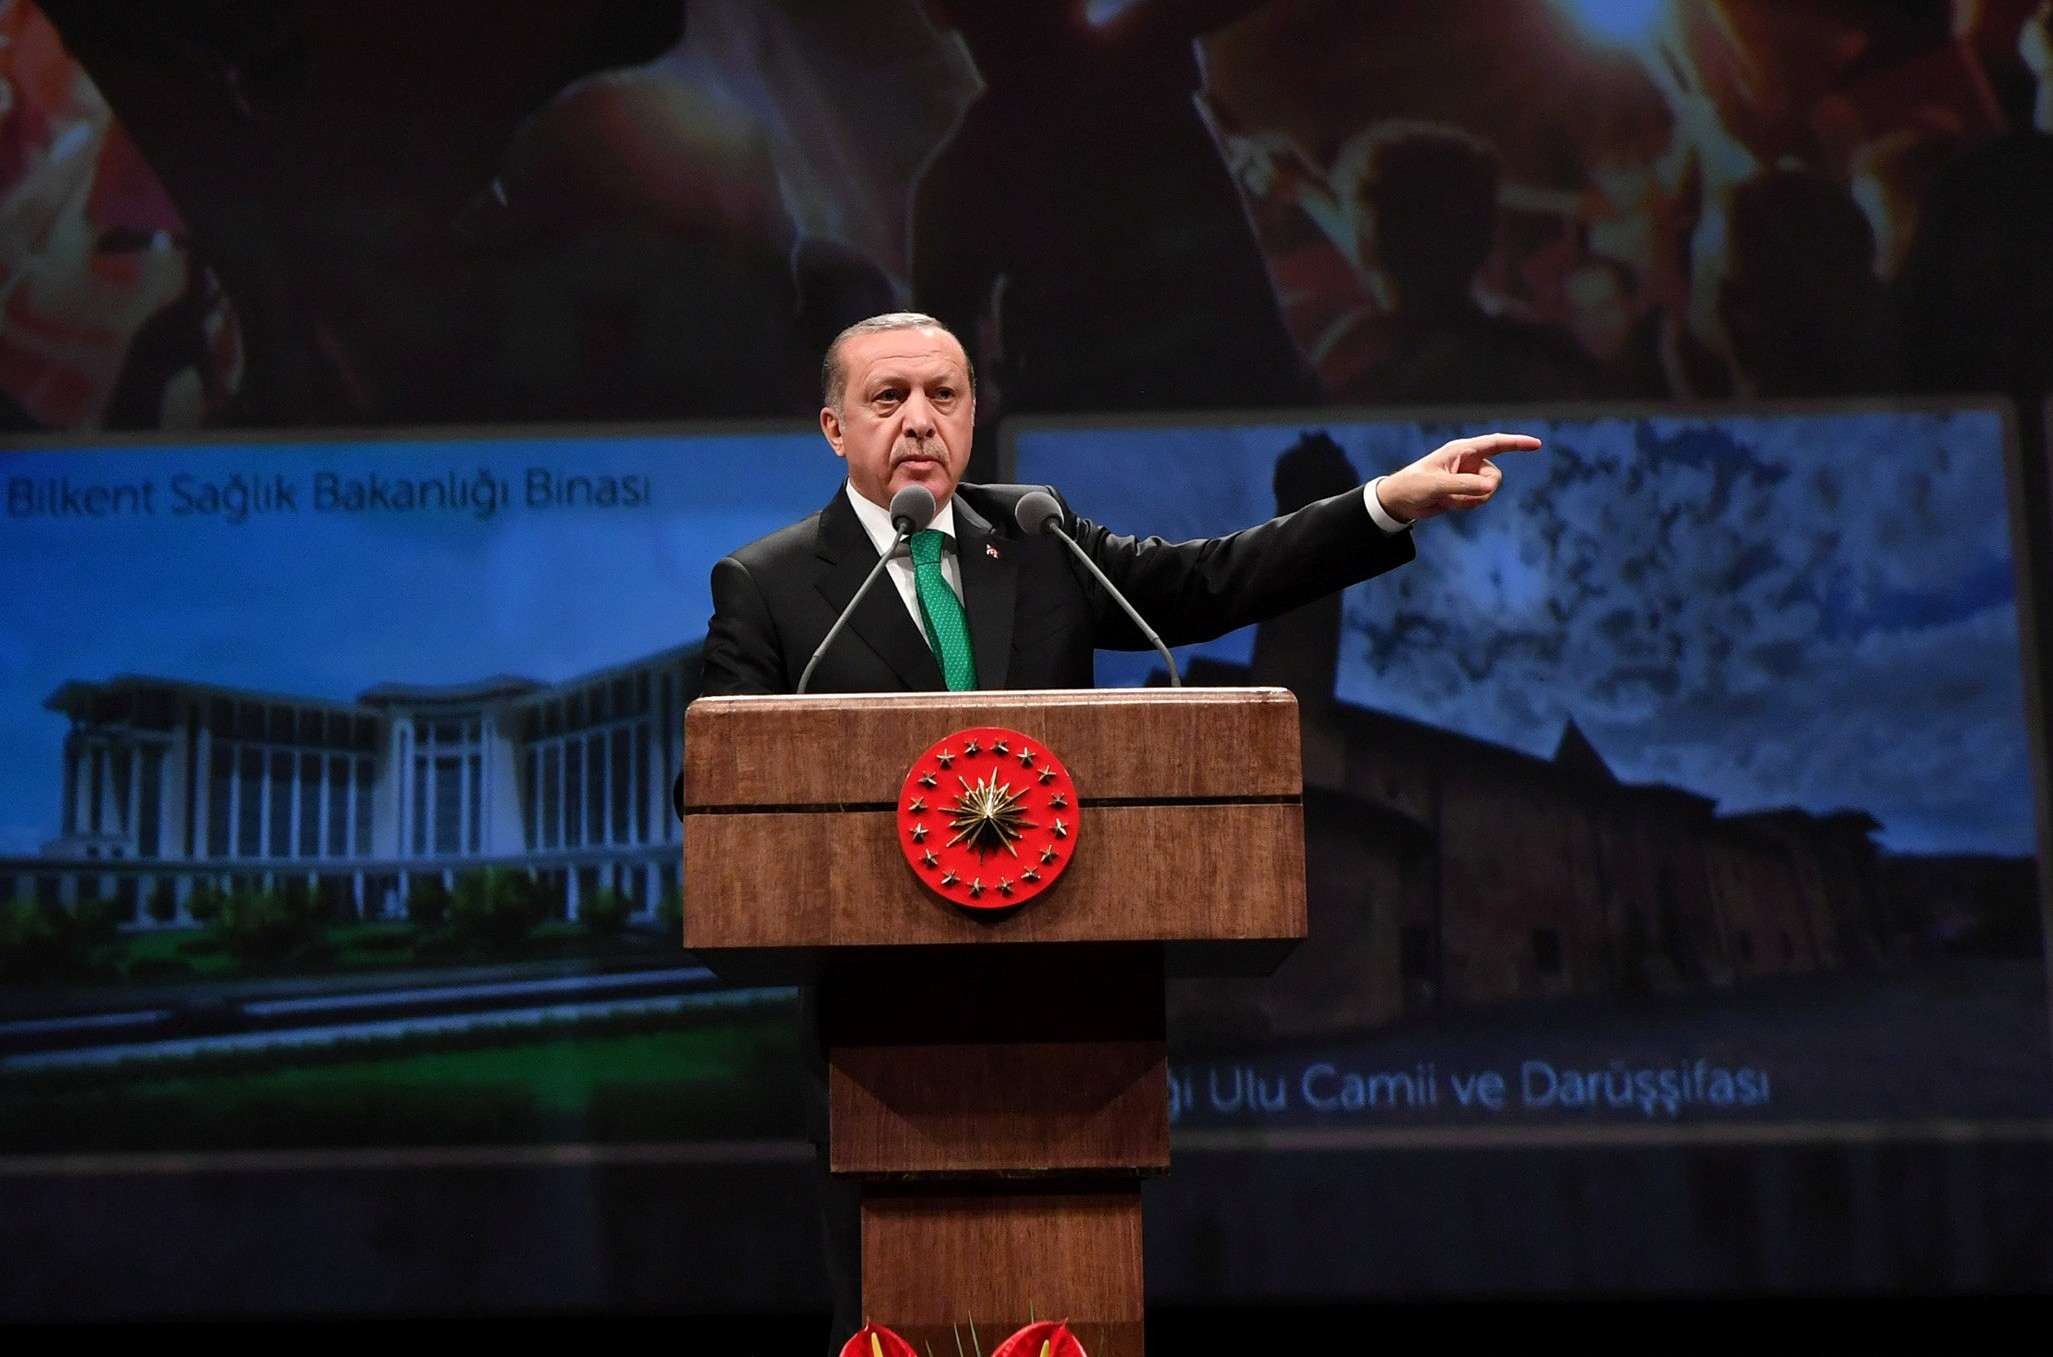 Deputy Prime Minister: Turkey Uses 'Nazi' Metaphors out of Worry for European Friends